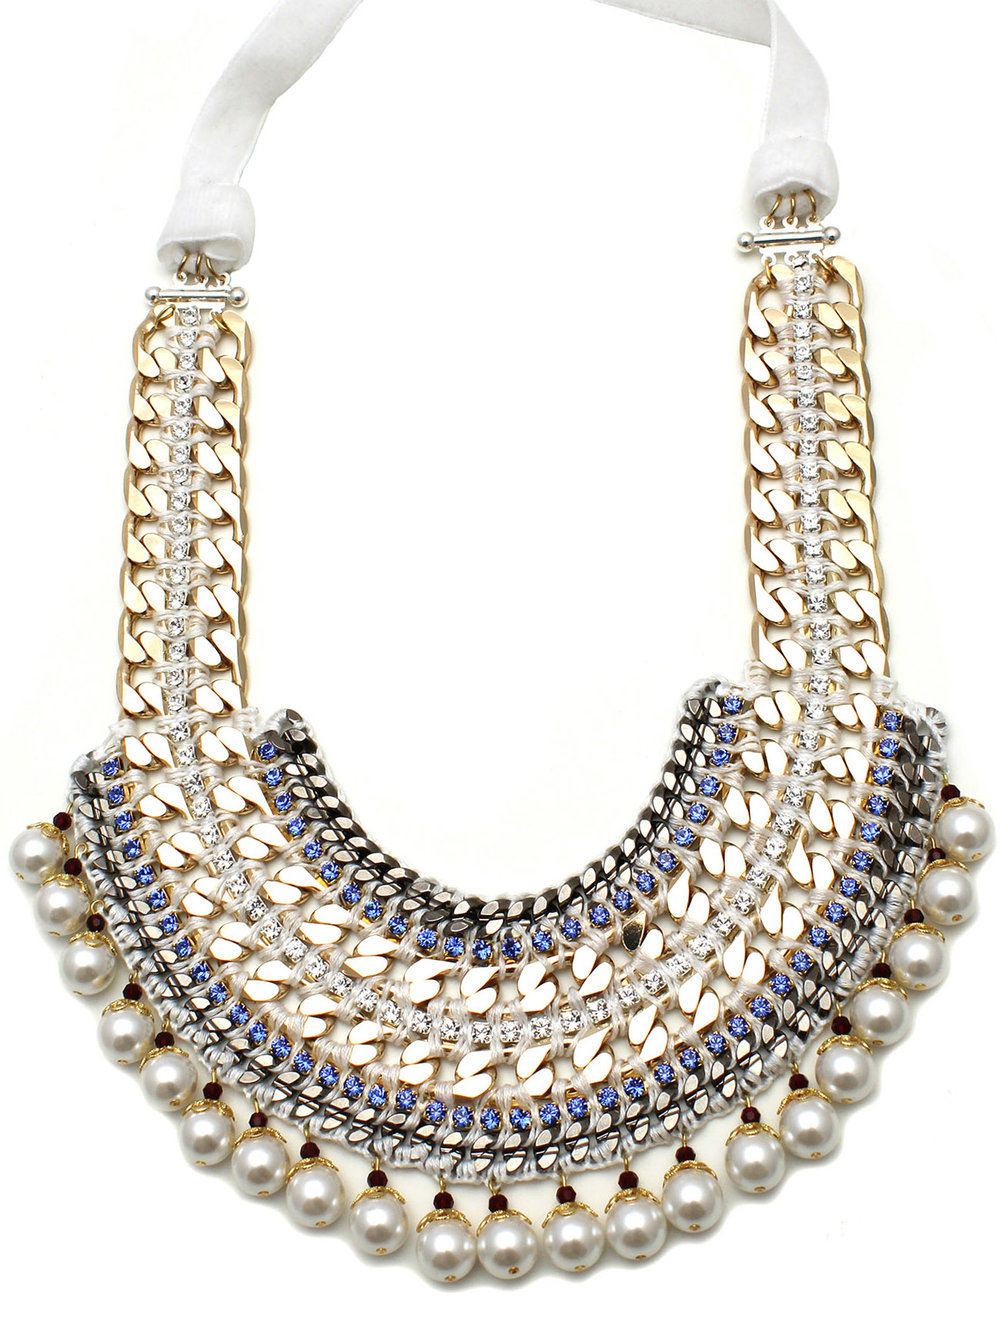 069 - Sapphire & Pearl White Necklace.jpg